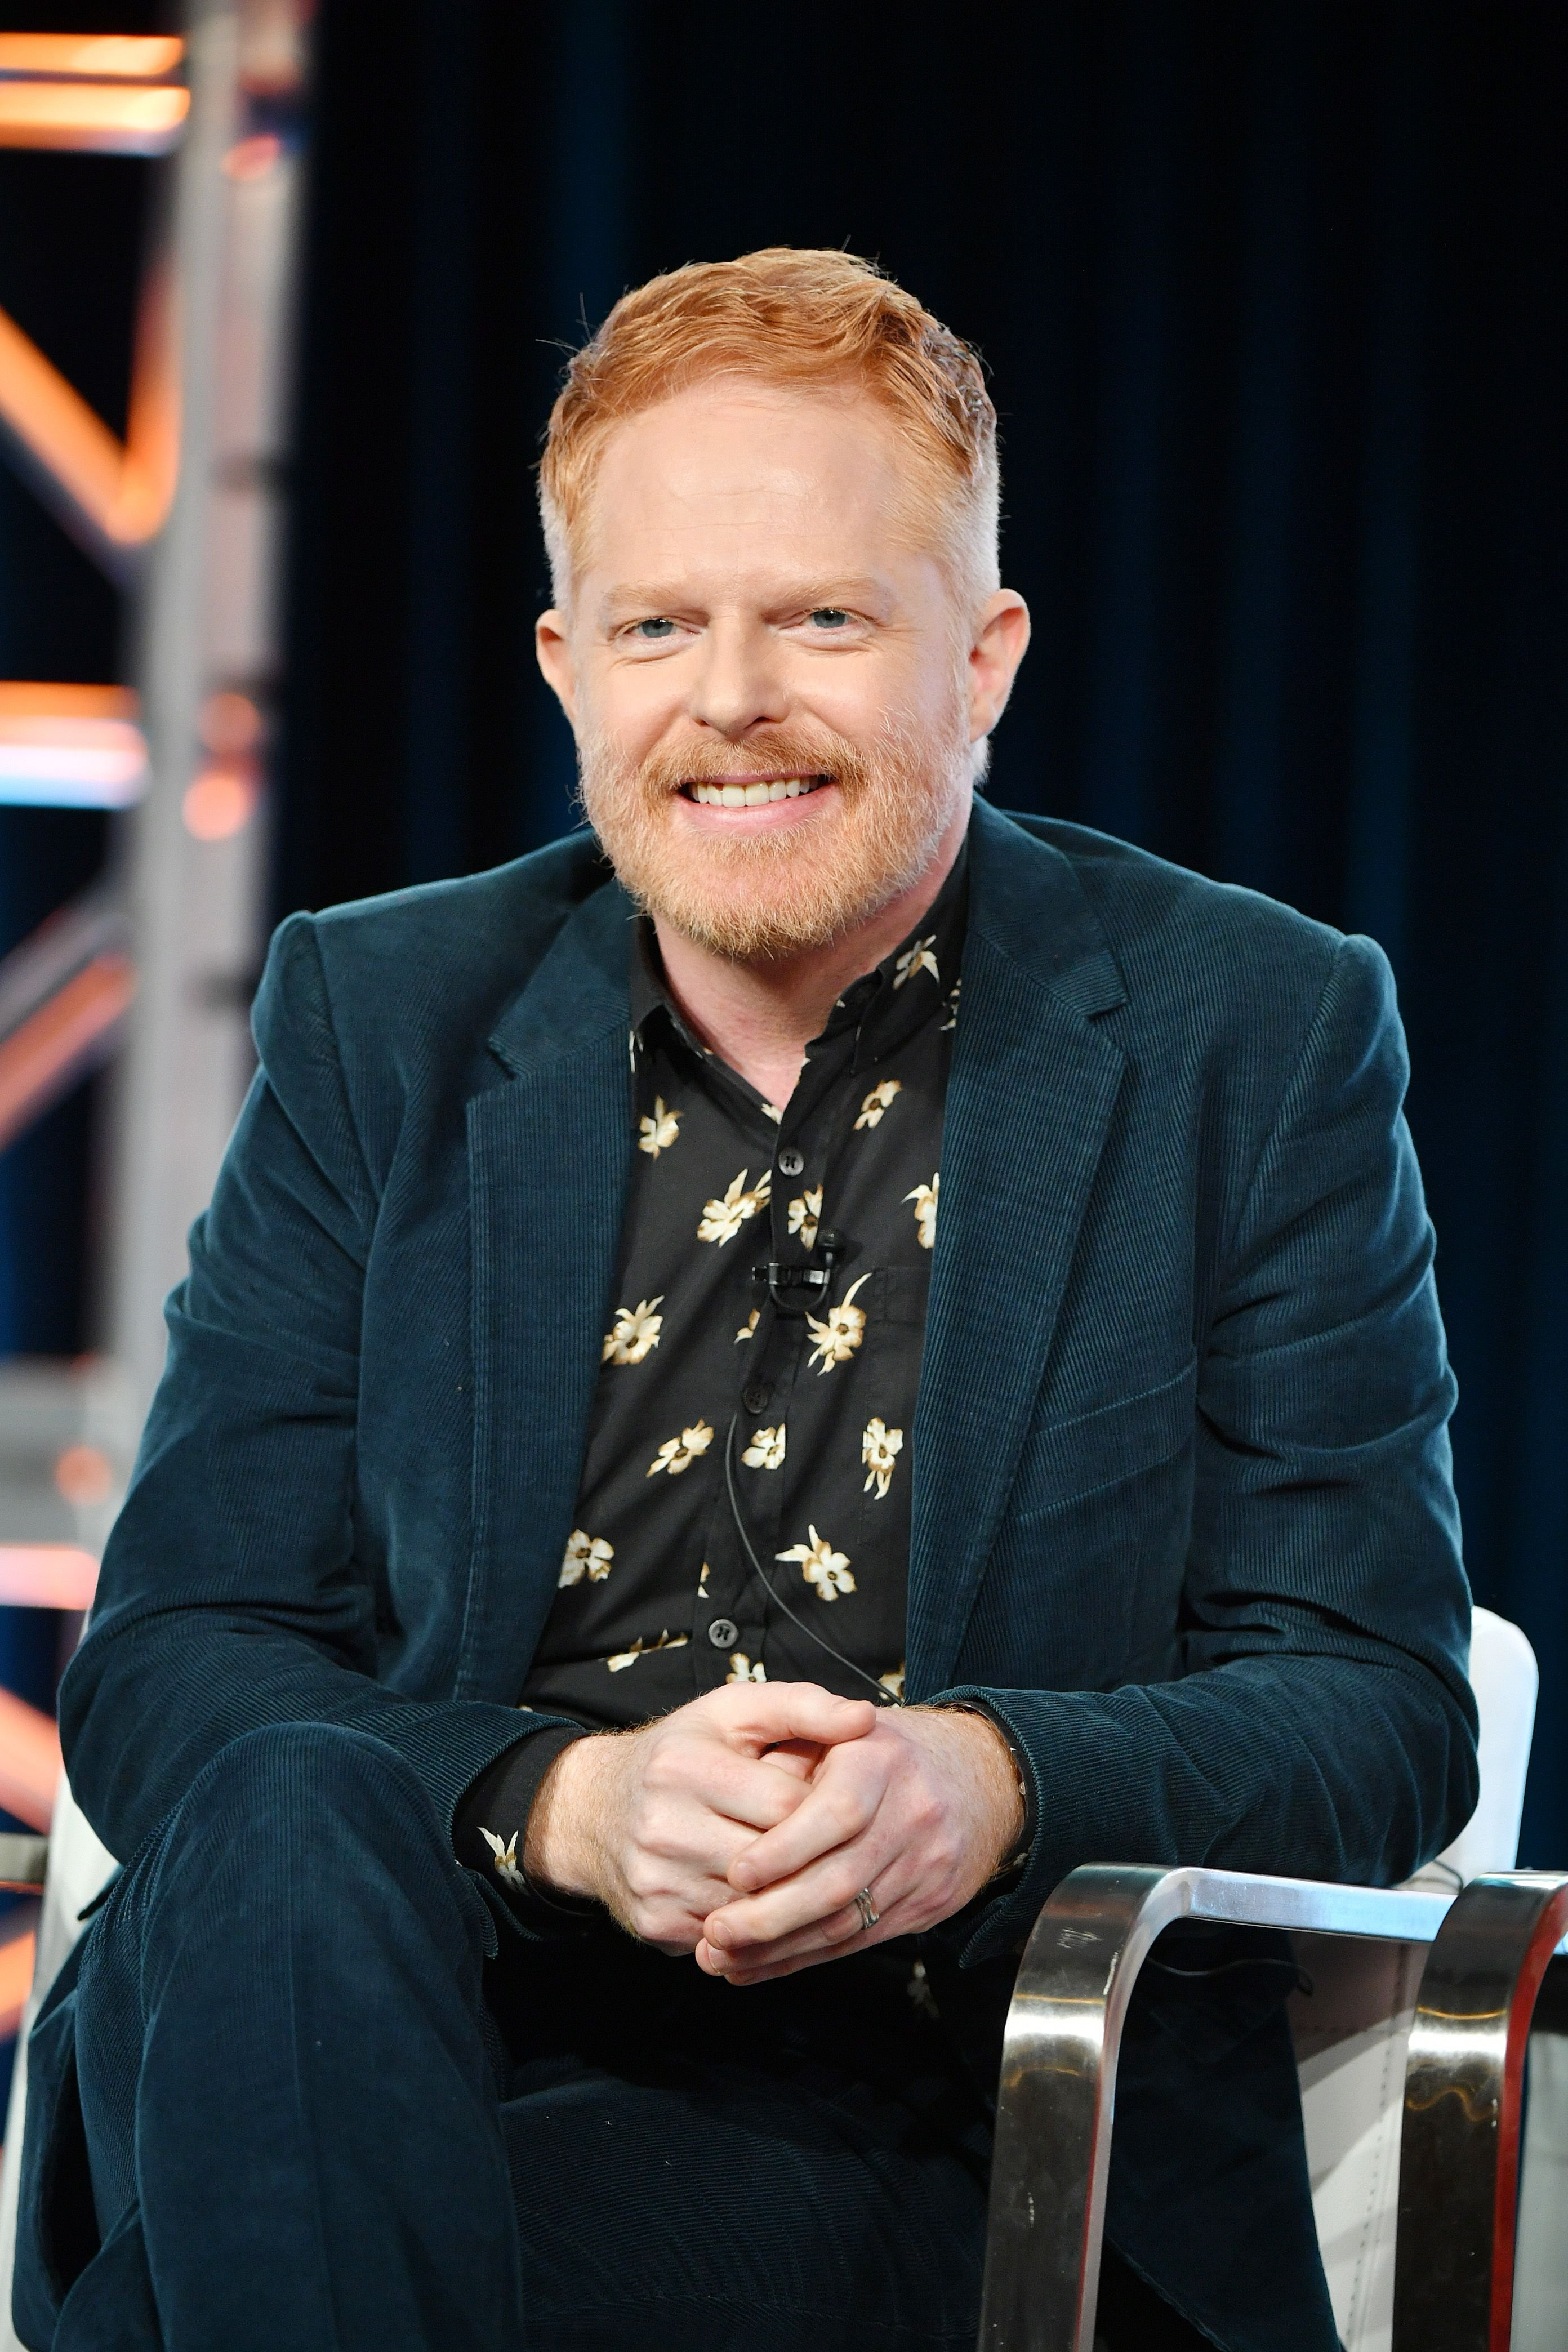 Jesse Tyler Ferguson at the HGTV segment of the 2020 Winter TCA Press Tour at The Langham Huntington, Pasadena on January 16, 2020 | Photo: Getty Images